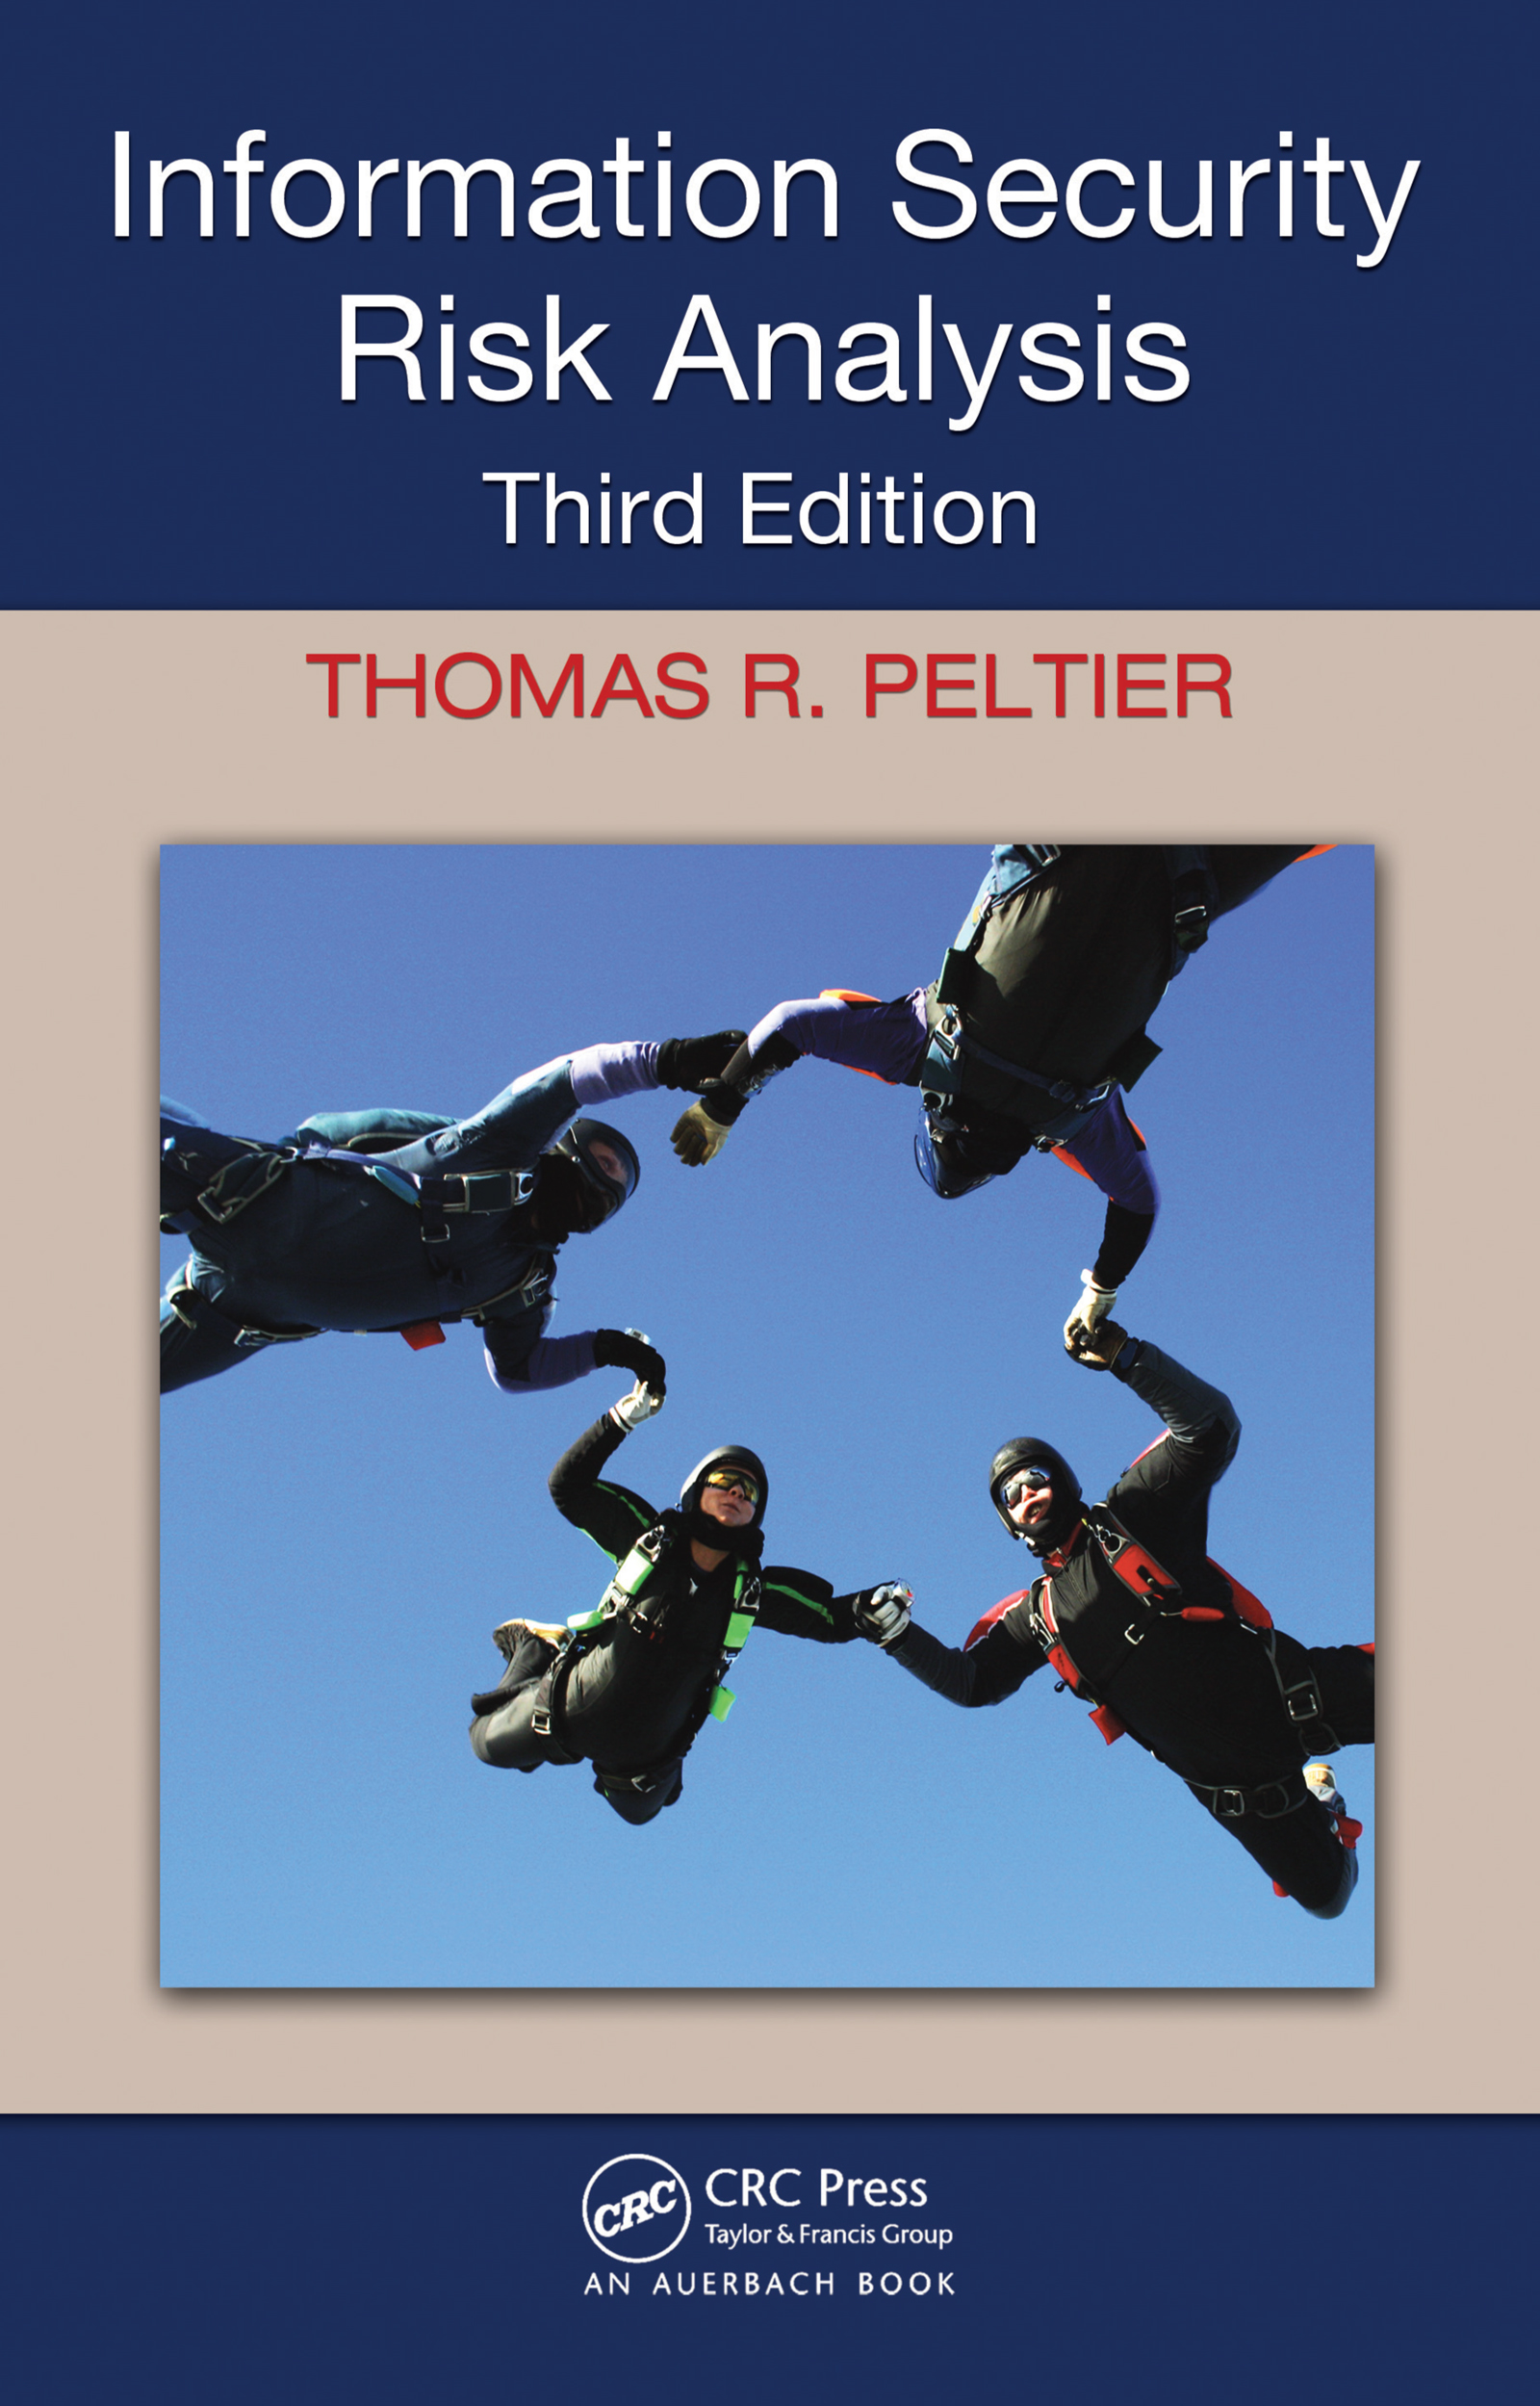 Download Ebook Information Security Risk Analysis (3rd ed.) by Thomas R. Peltier Pdf